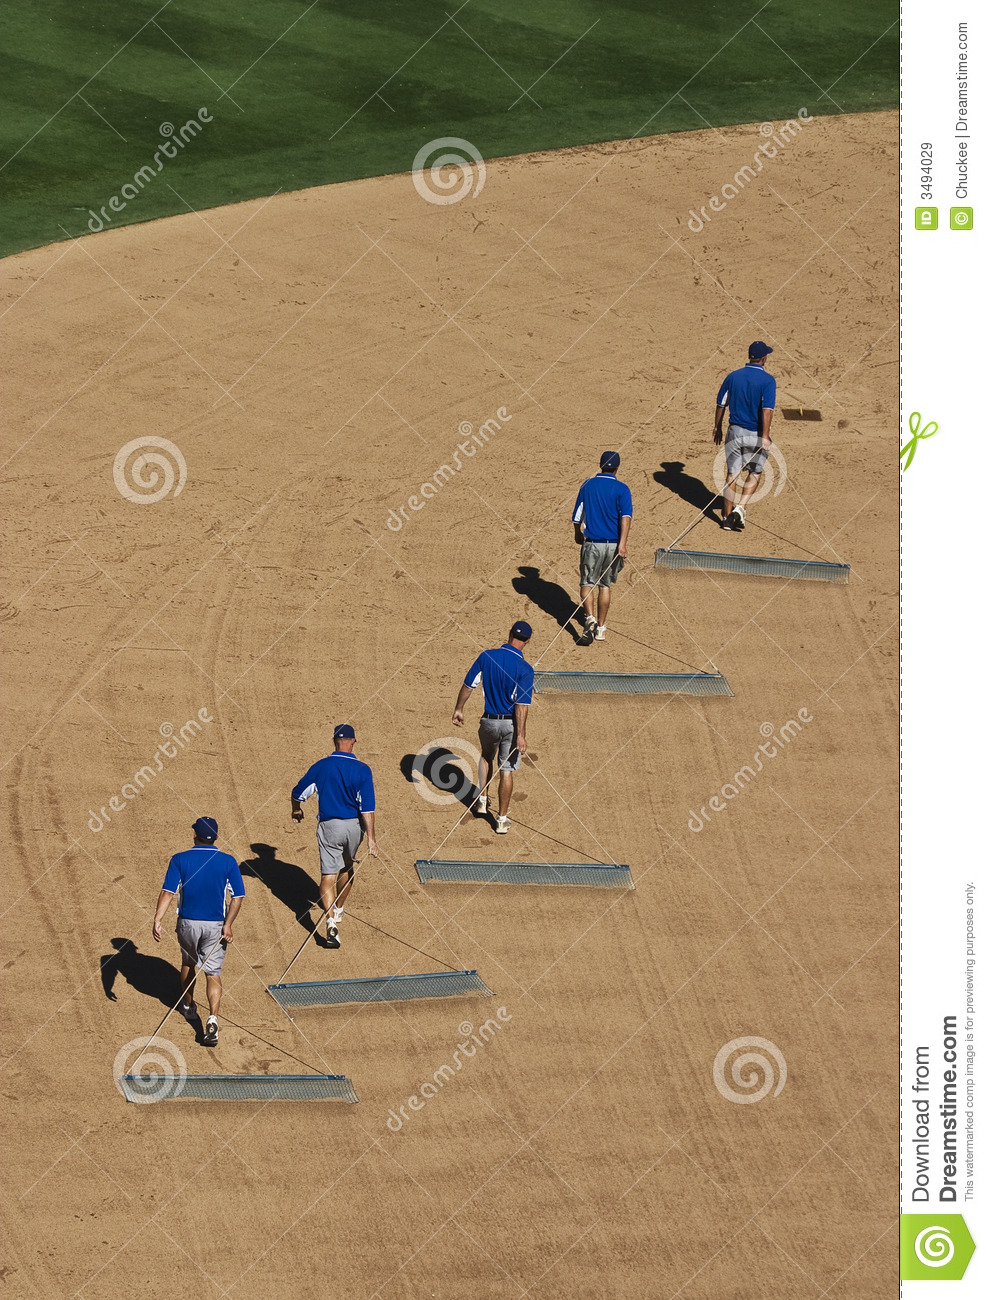 Dragging the field stock image. Image of baseball, stagger